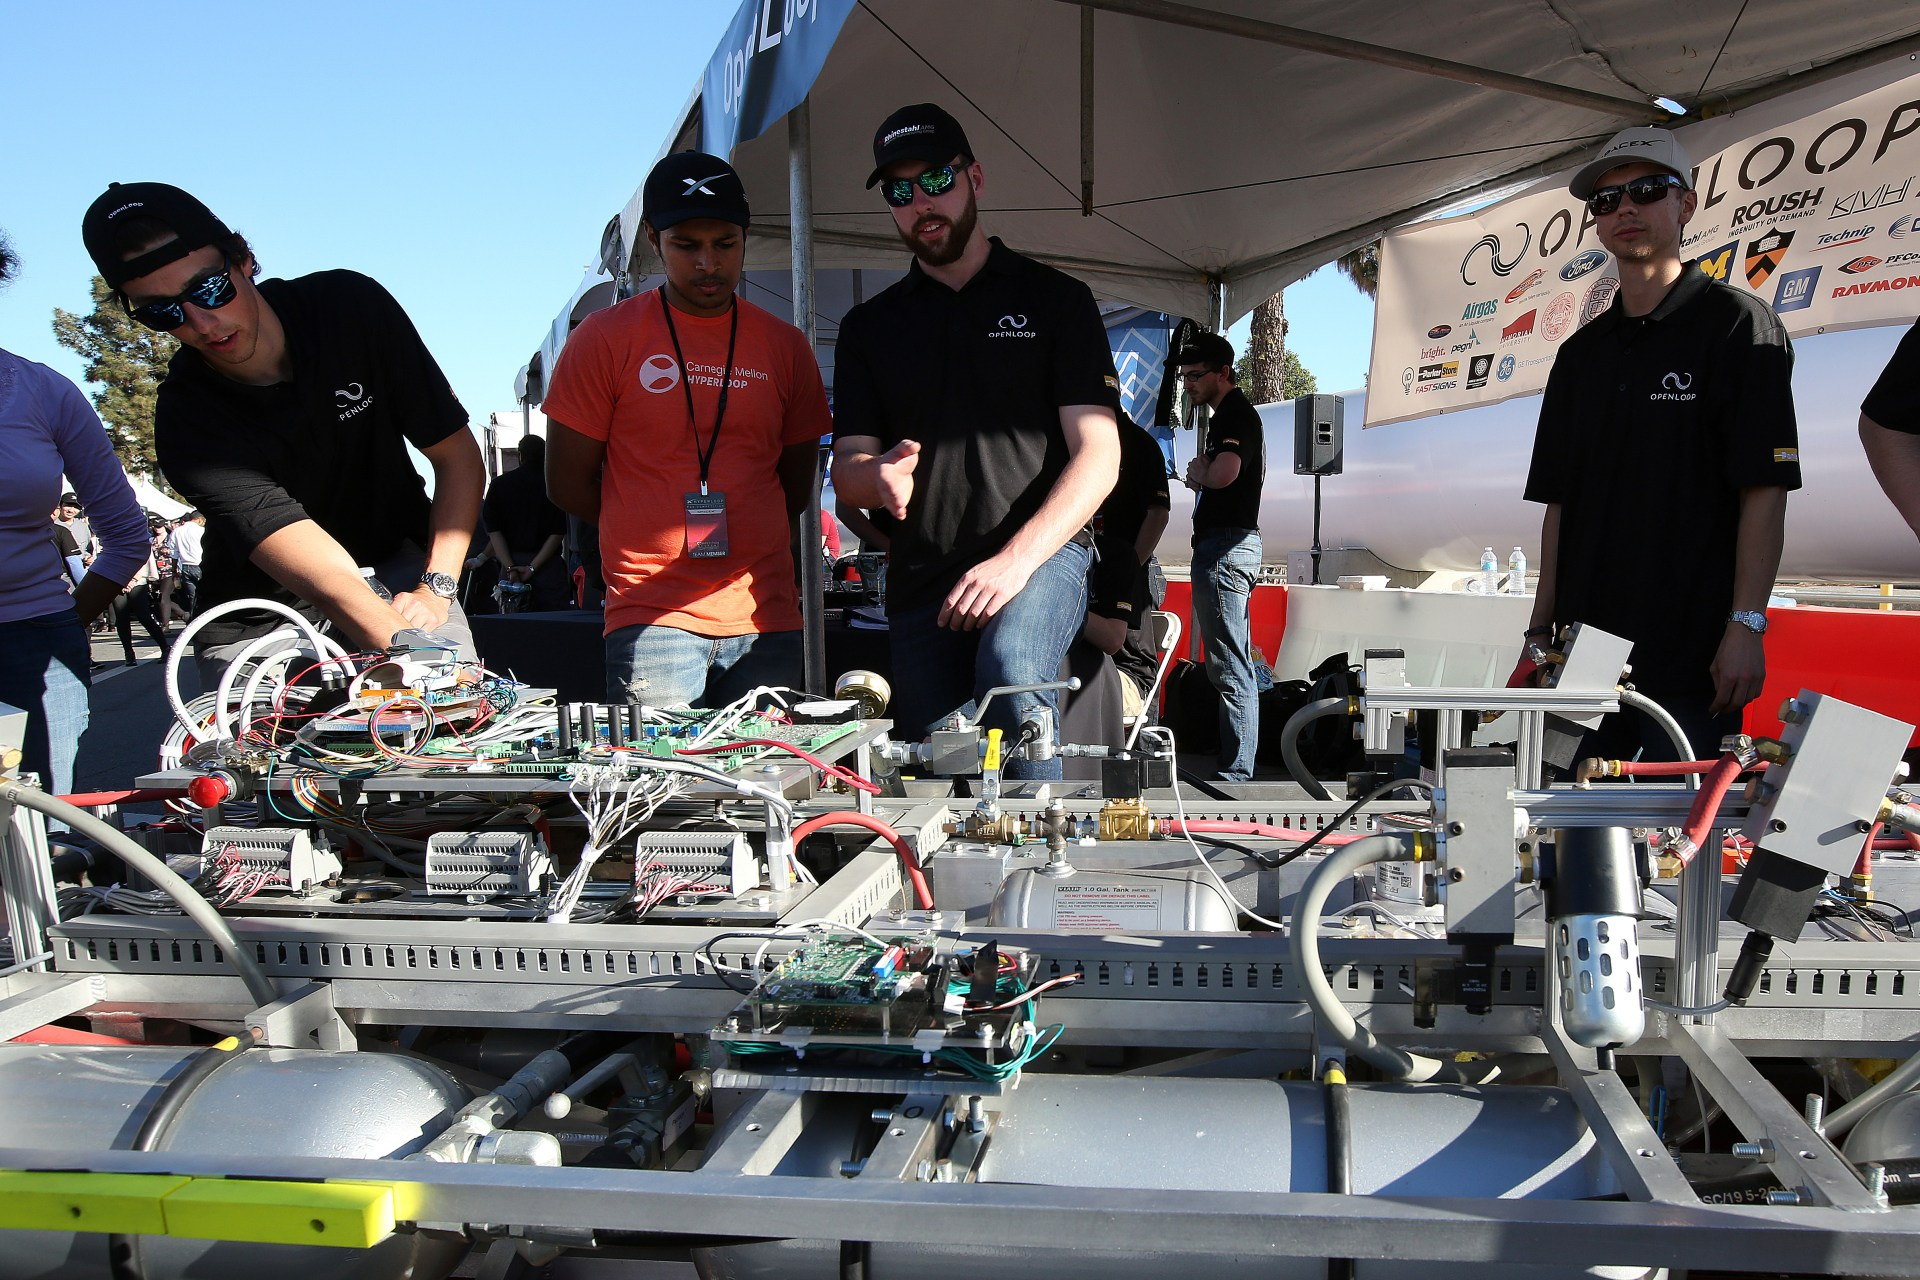 Team members from Openloop, a six school alliance including Northeastern, Memorial University, Princeton, Cornell, Harvey Mudd College and the University of Michigan look at the electronics of their pod in their booth during the SpaceX Hyperloop Pod Competition in Hawthorne, Los Angeles, California, U.S., January 29, 2017. REUTERS/Monica Almeida - RTSY02S